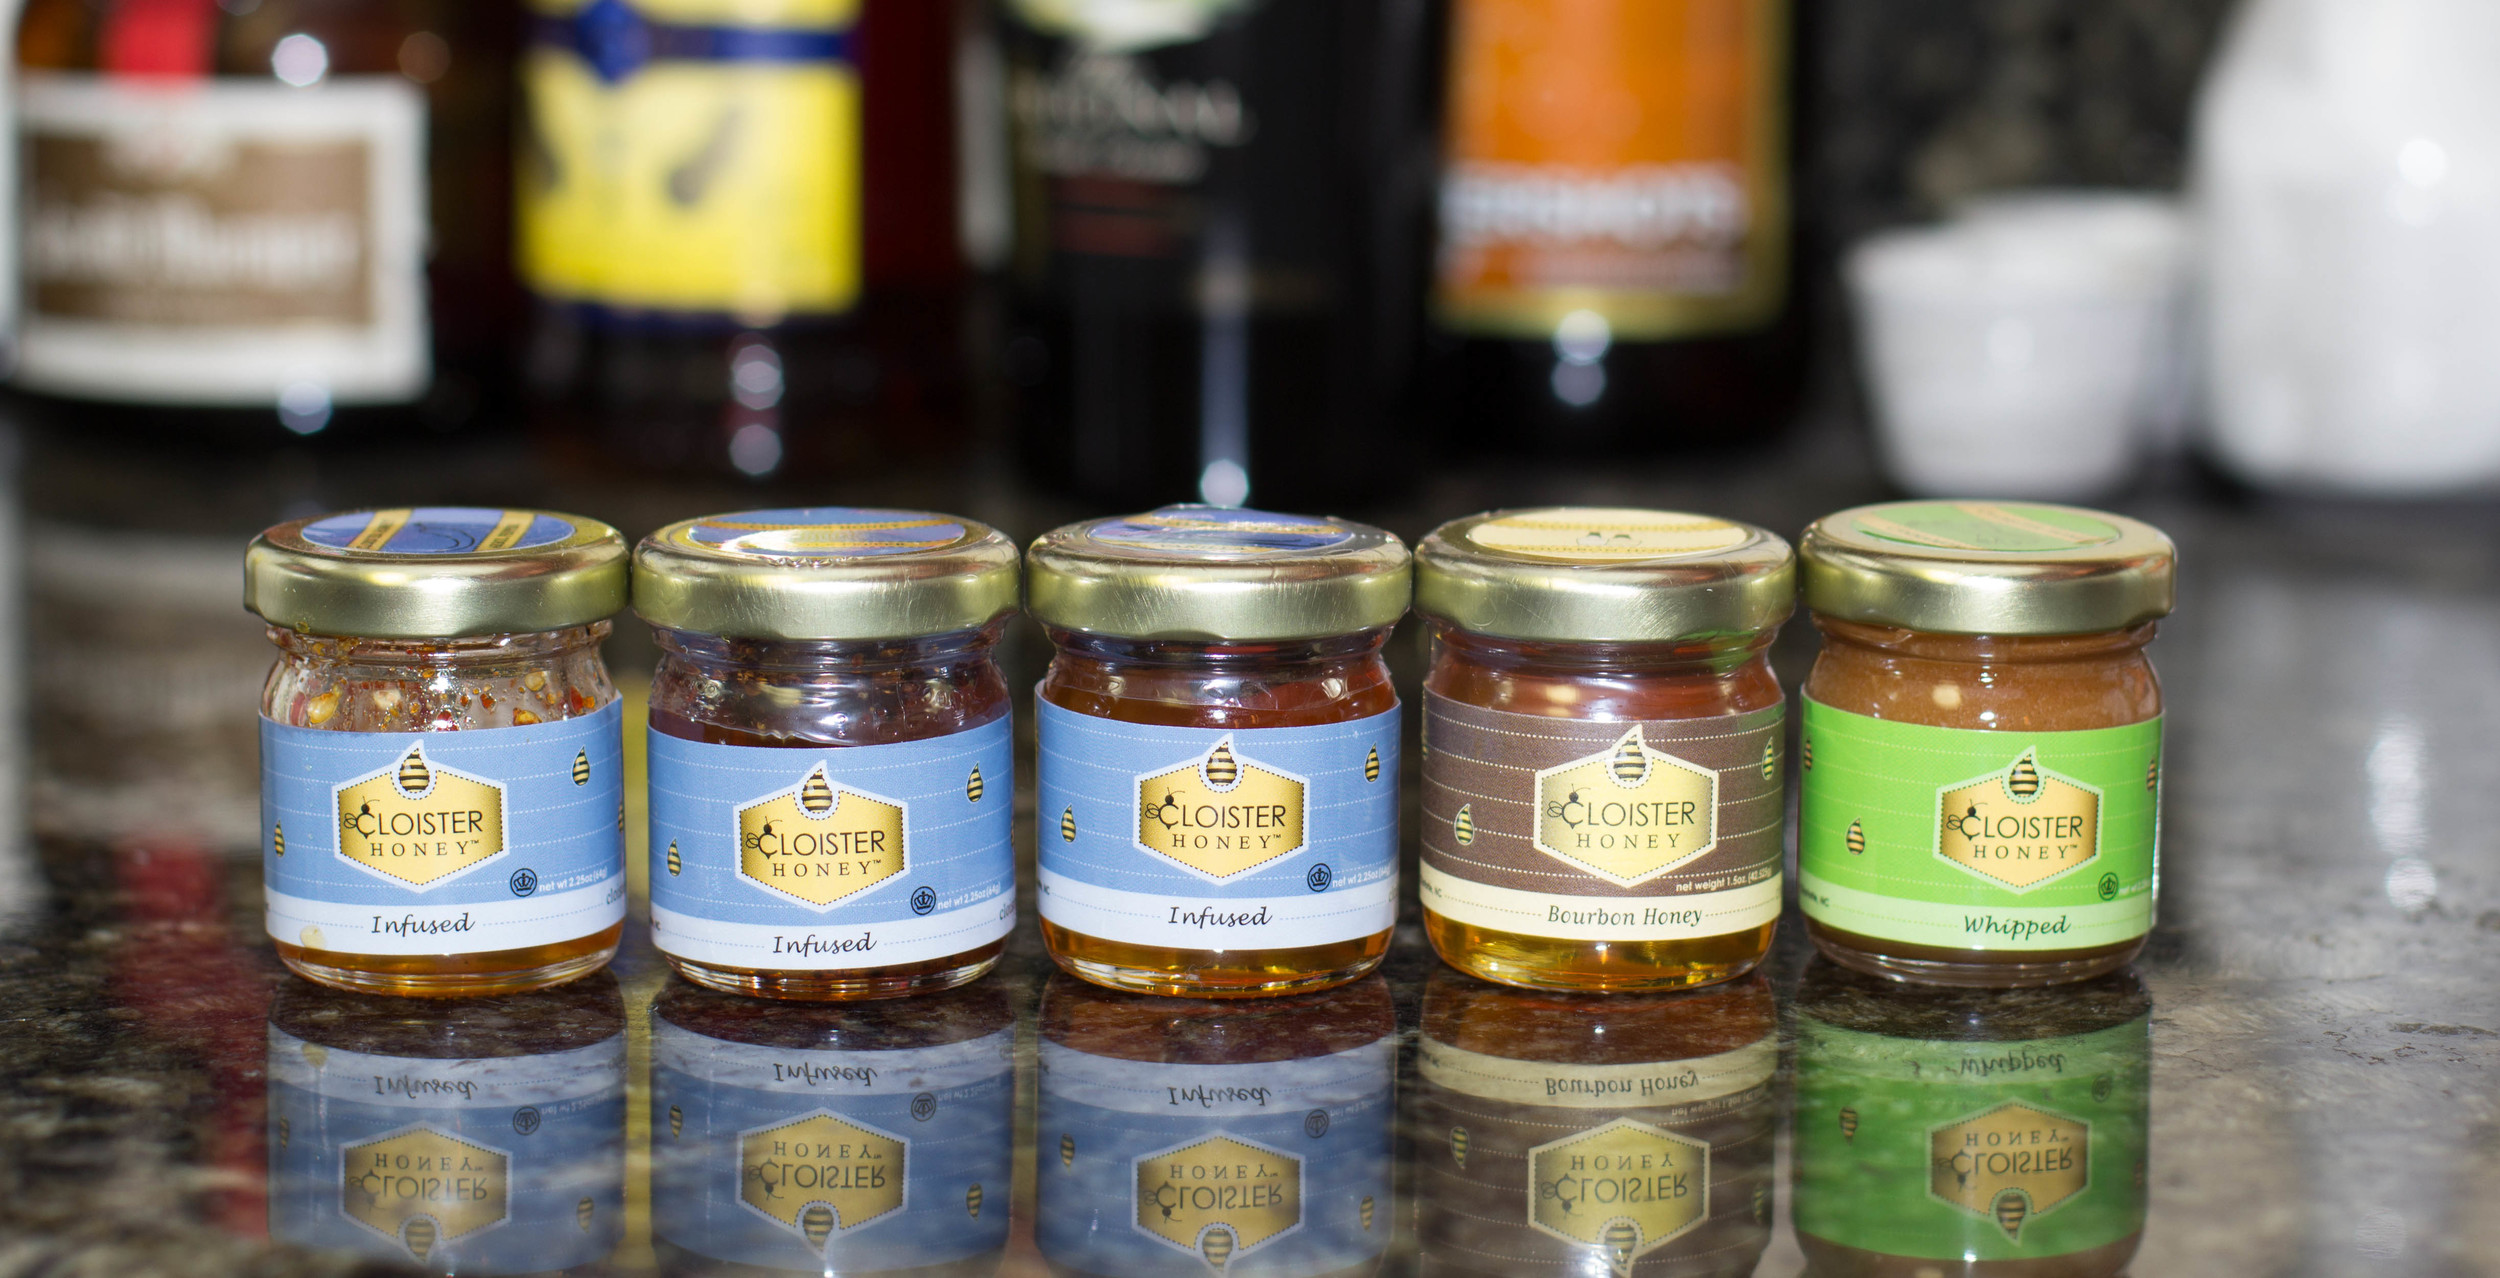 Blogger sample kit honey varieties (left to right): Arbol Chili Pepper, Chipotle Pepper, Vanilla Infused, Bourbon Infused, Whipped Cinnamon